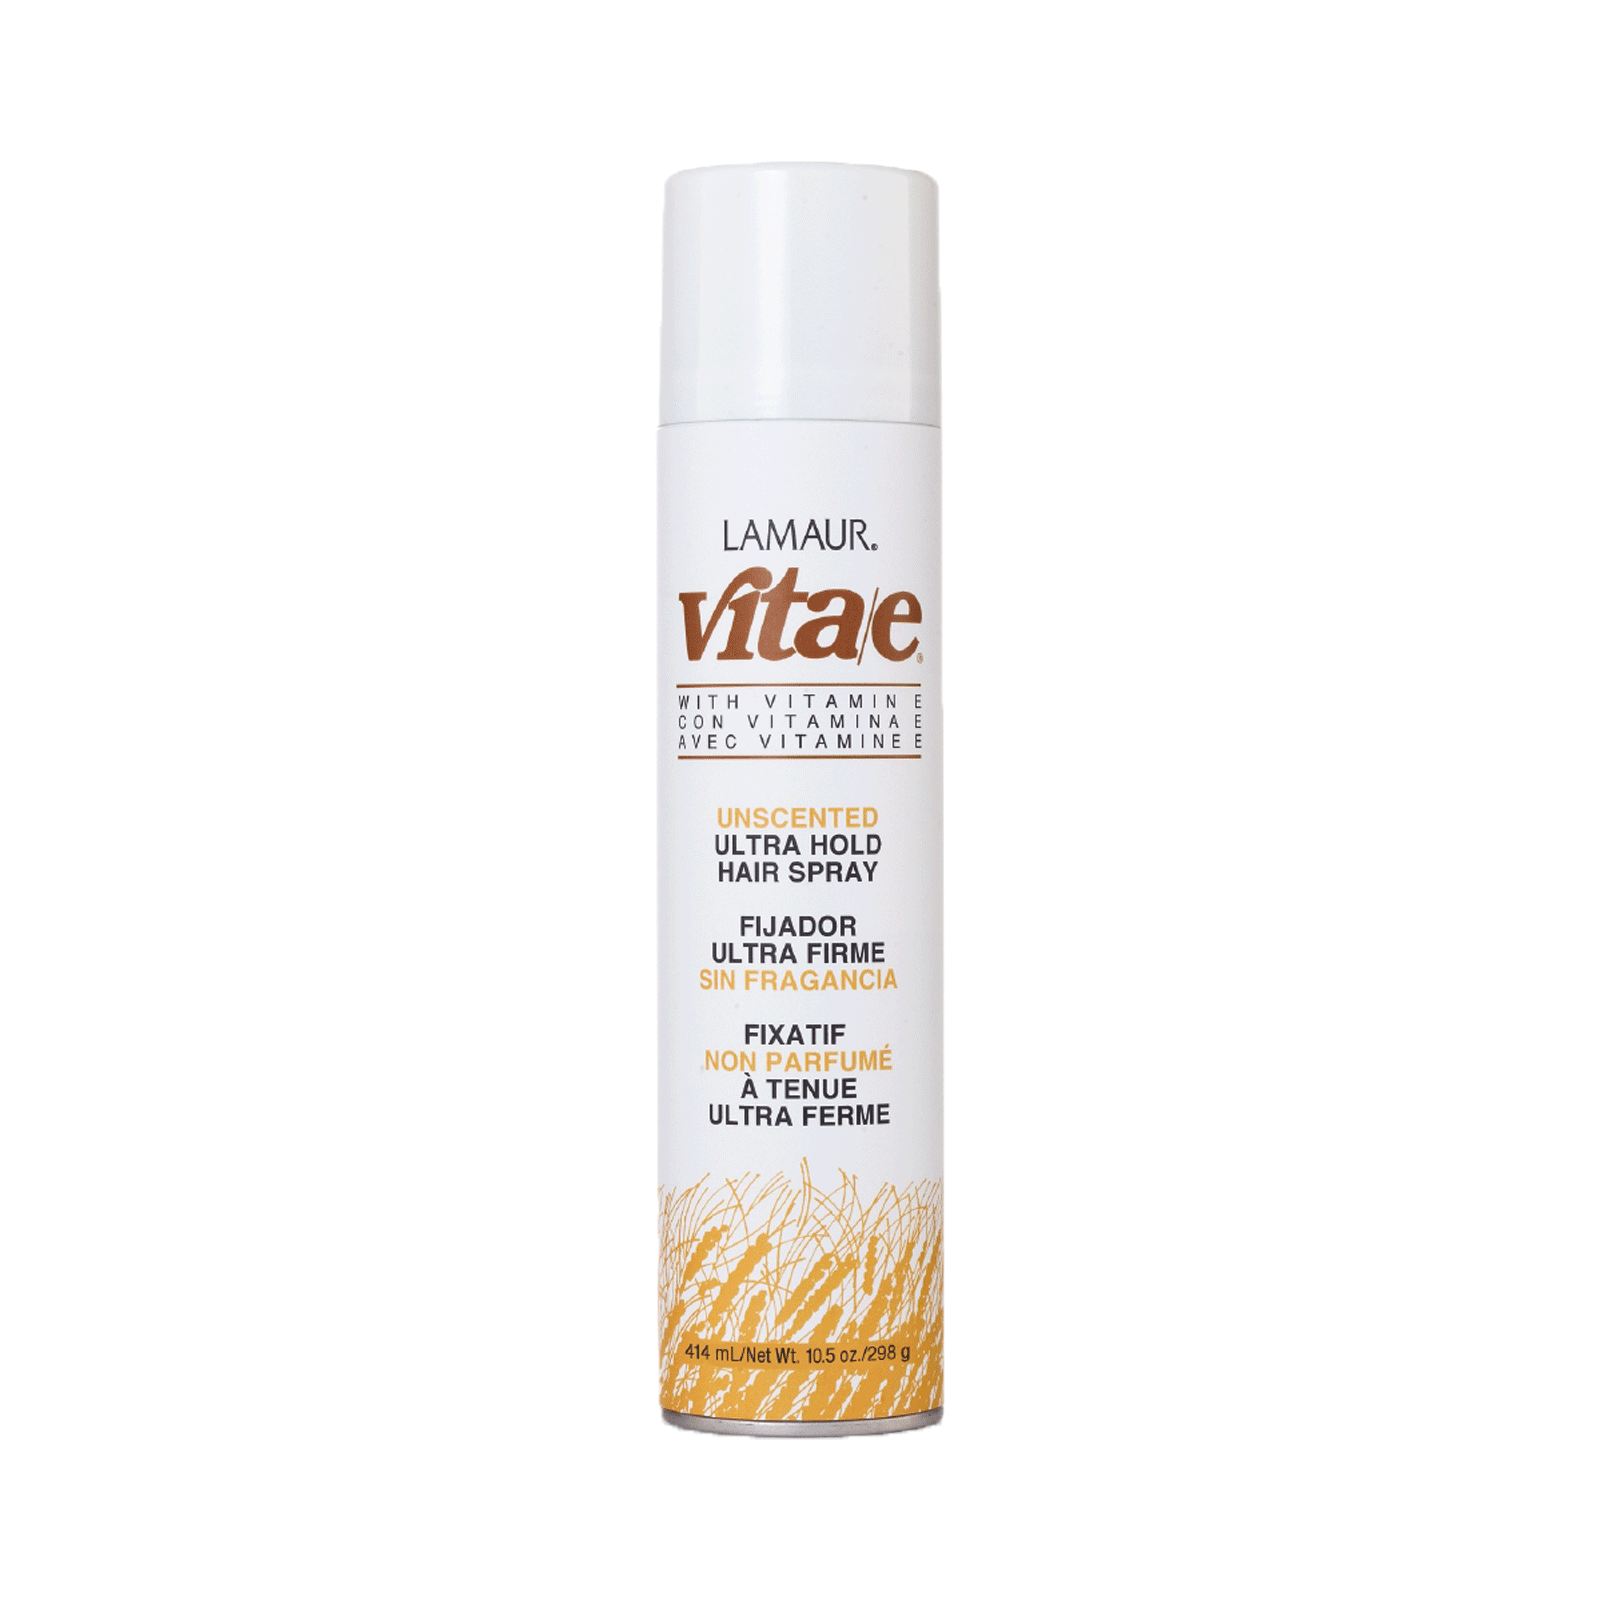 Vita E Unscented Ultra Hold Hairspray